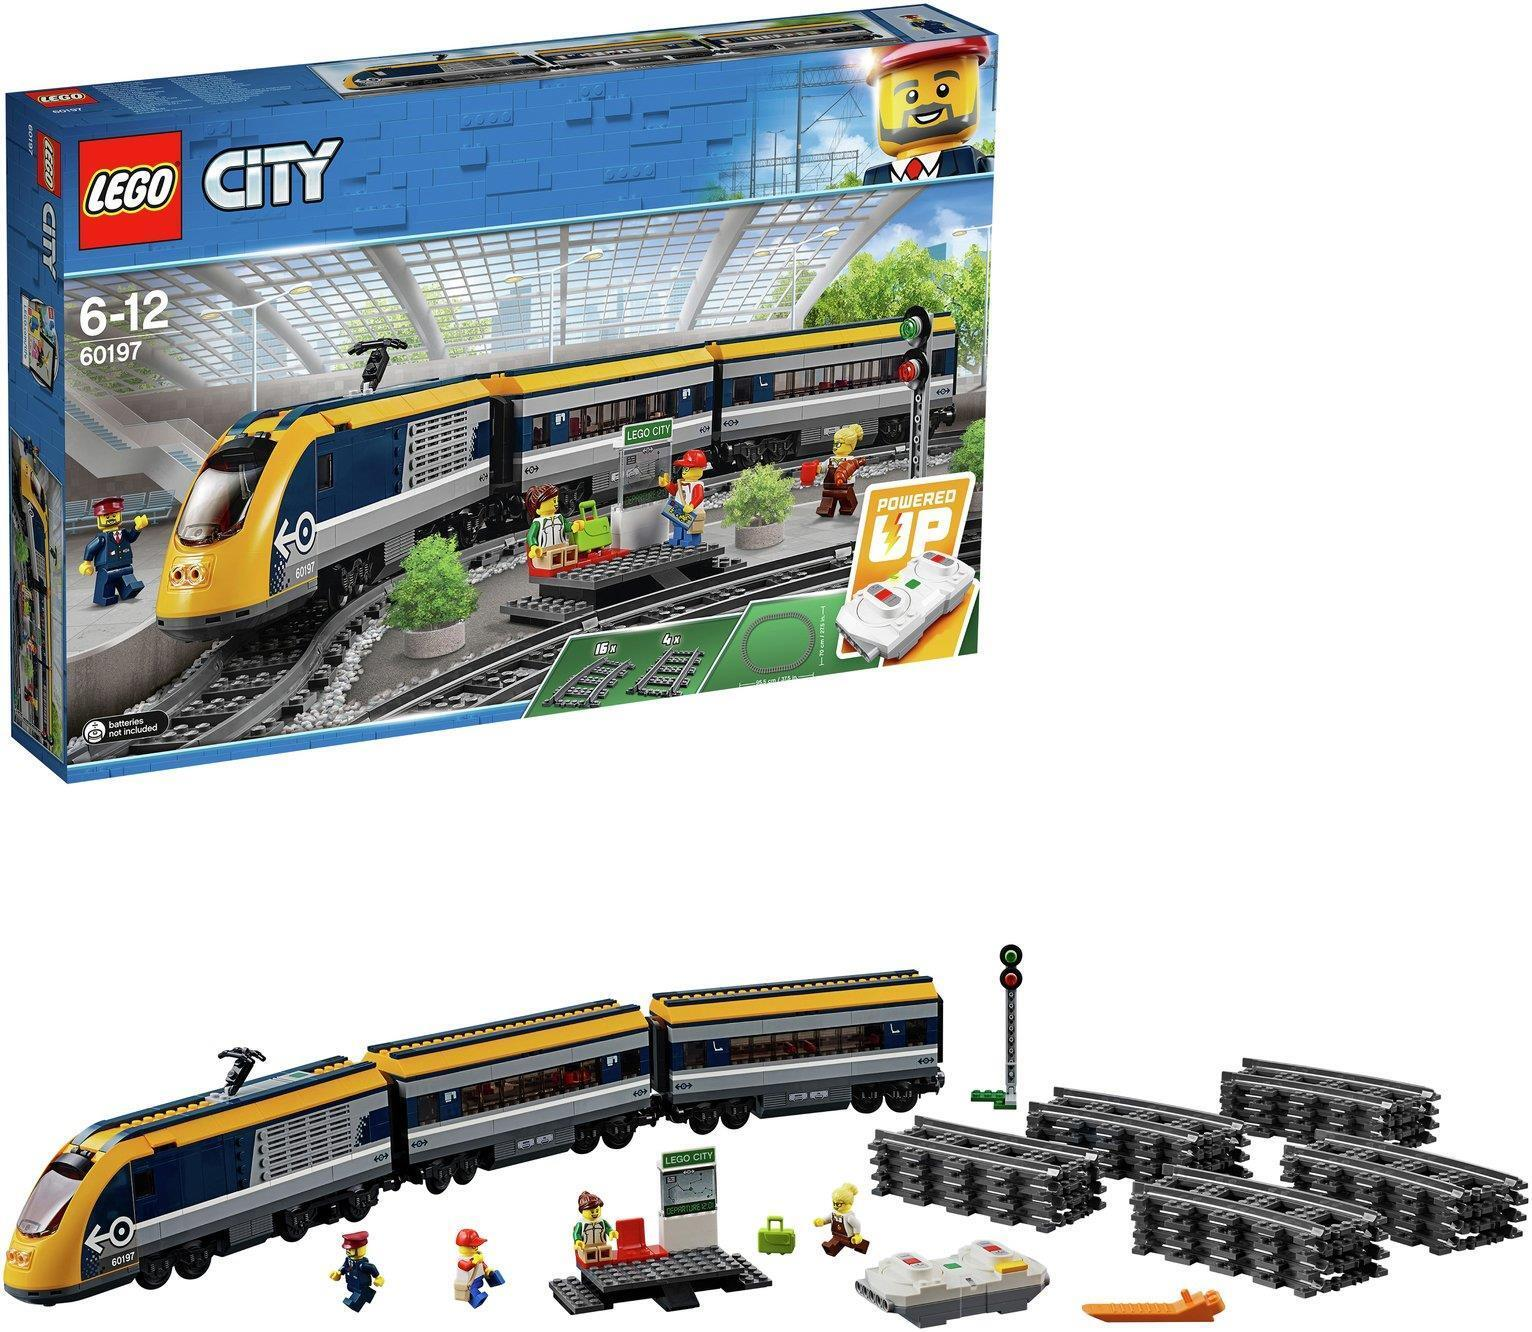 LEGO New Passenger High Speed City Toy Toy Toy Train Sealed Box Construction Set-60197 799ff1